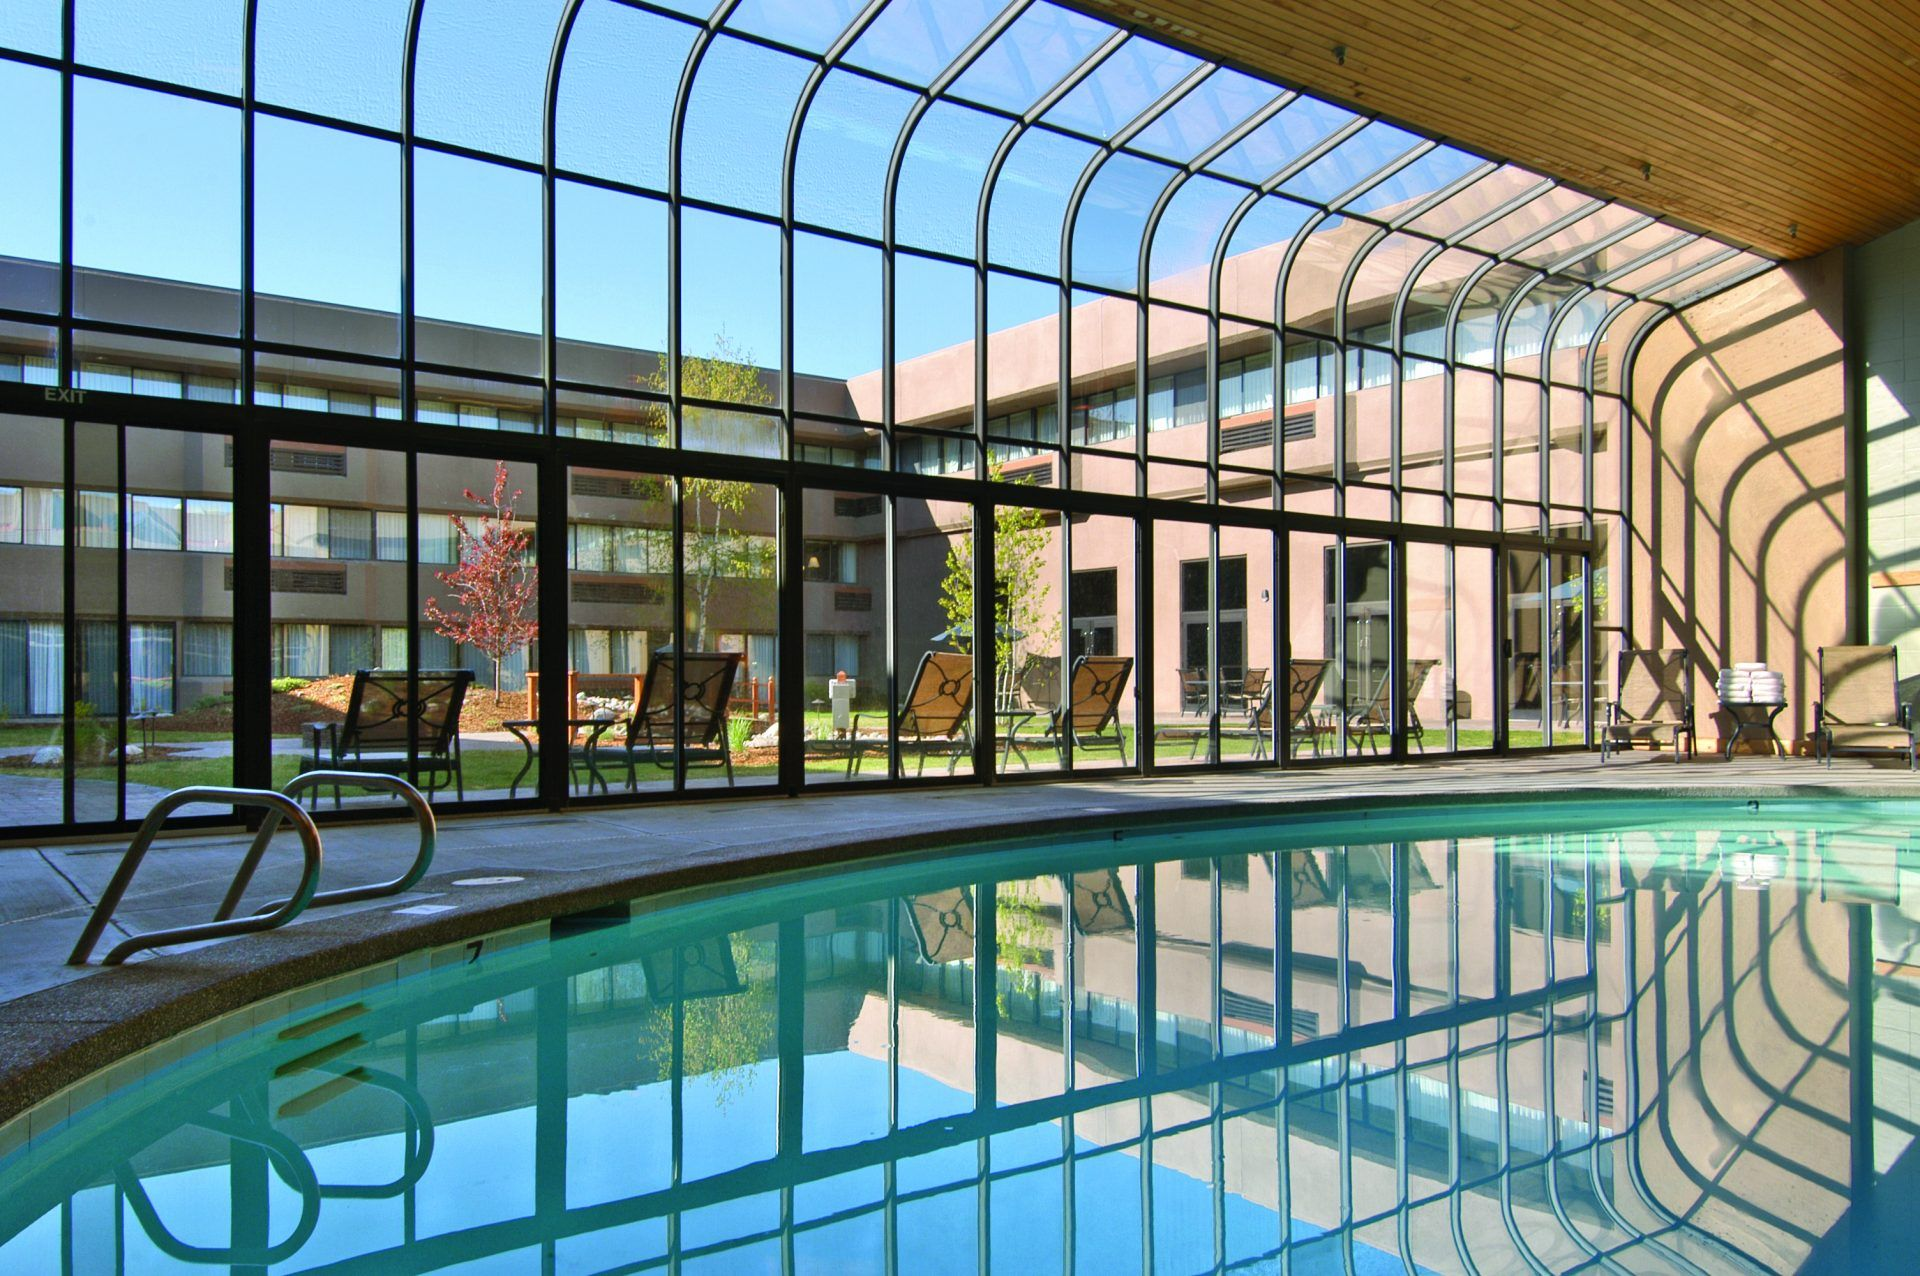 Hotel in Kalispell, MT 59901 | Red Lion Hotels | Red lion hotel, Kalispell,  National parks